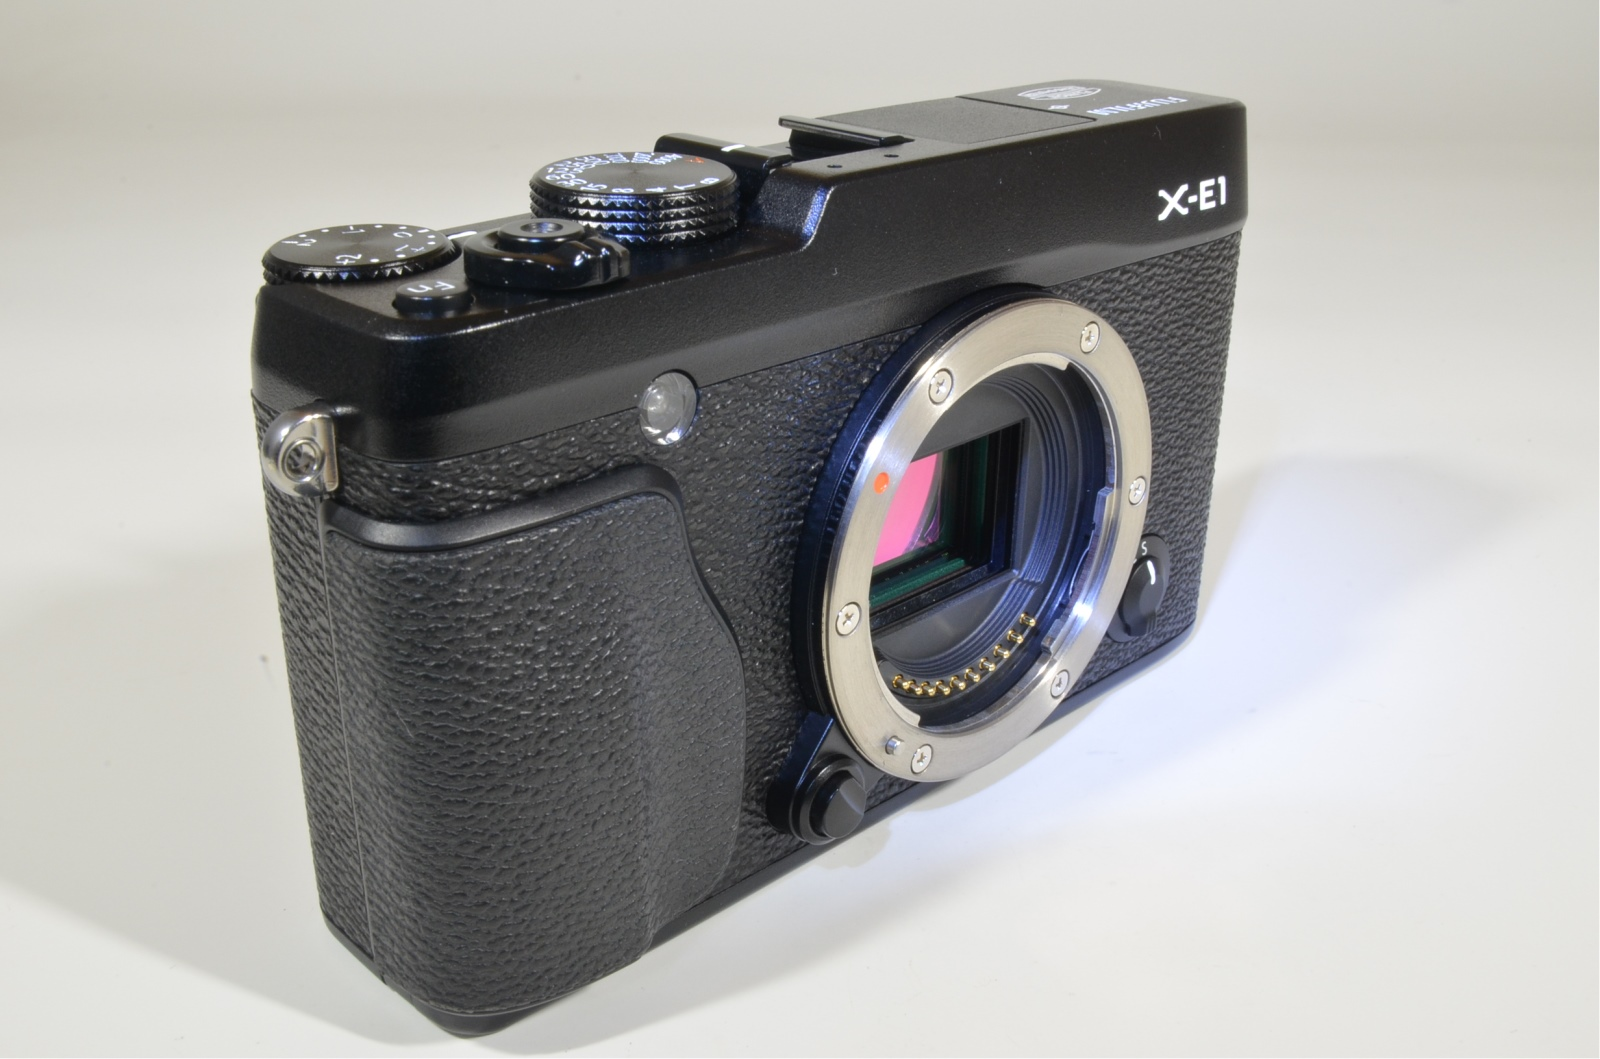 fujifilm x-e1 with xf18-55mm f2.8-4 r ois digital camera